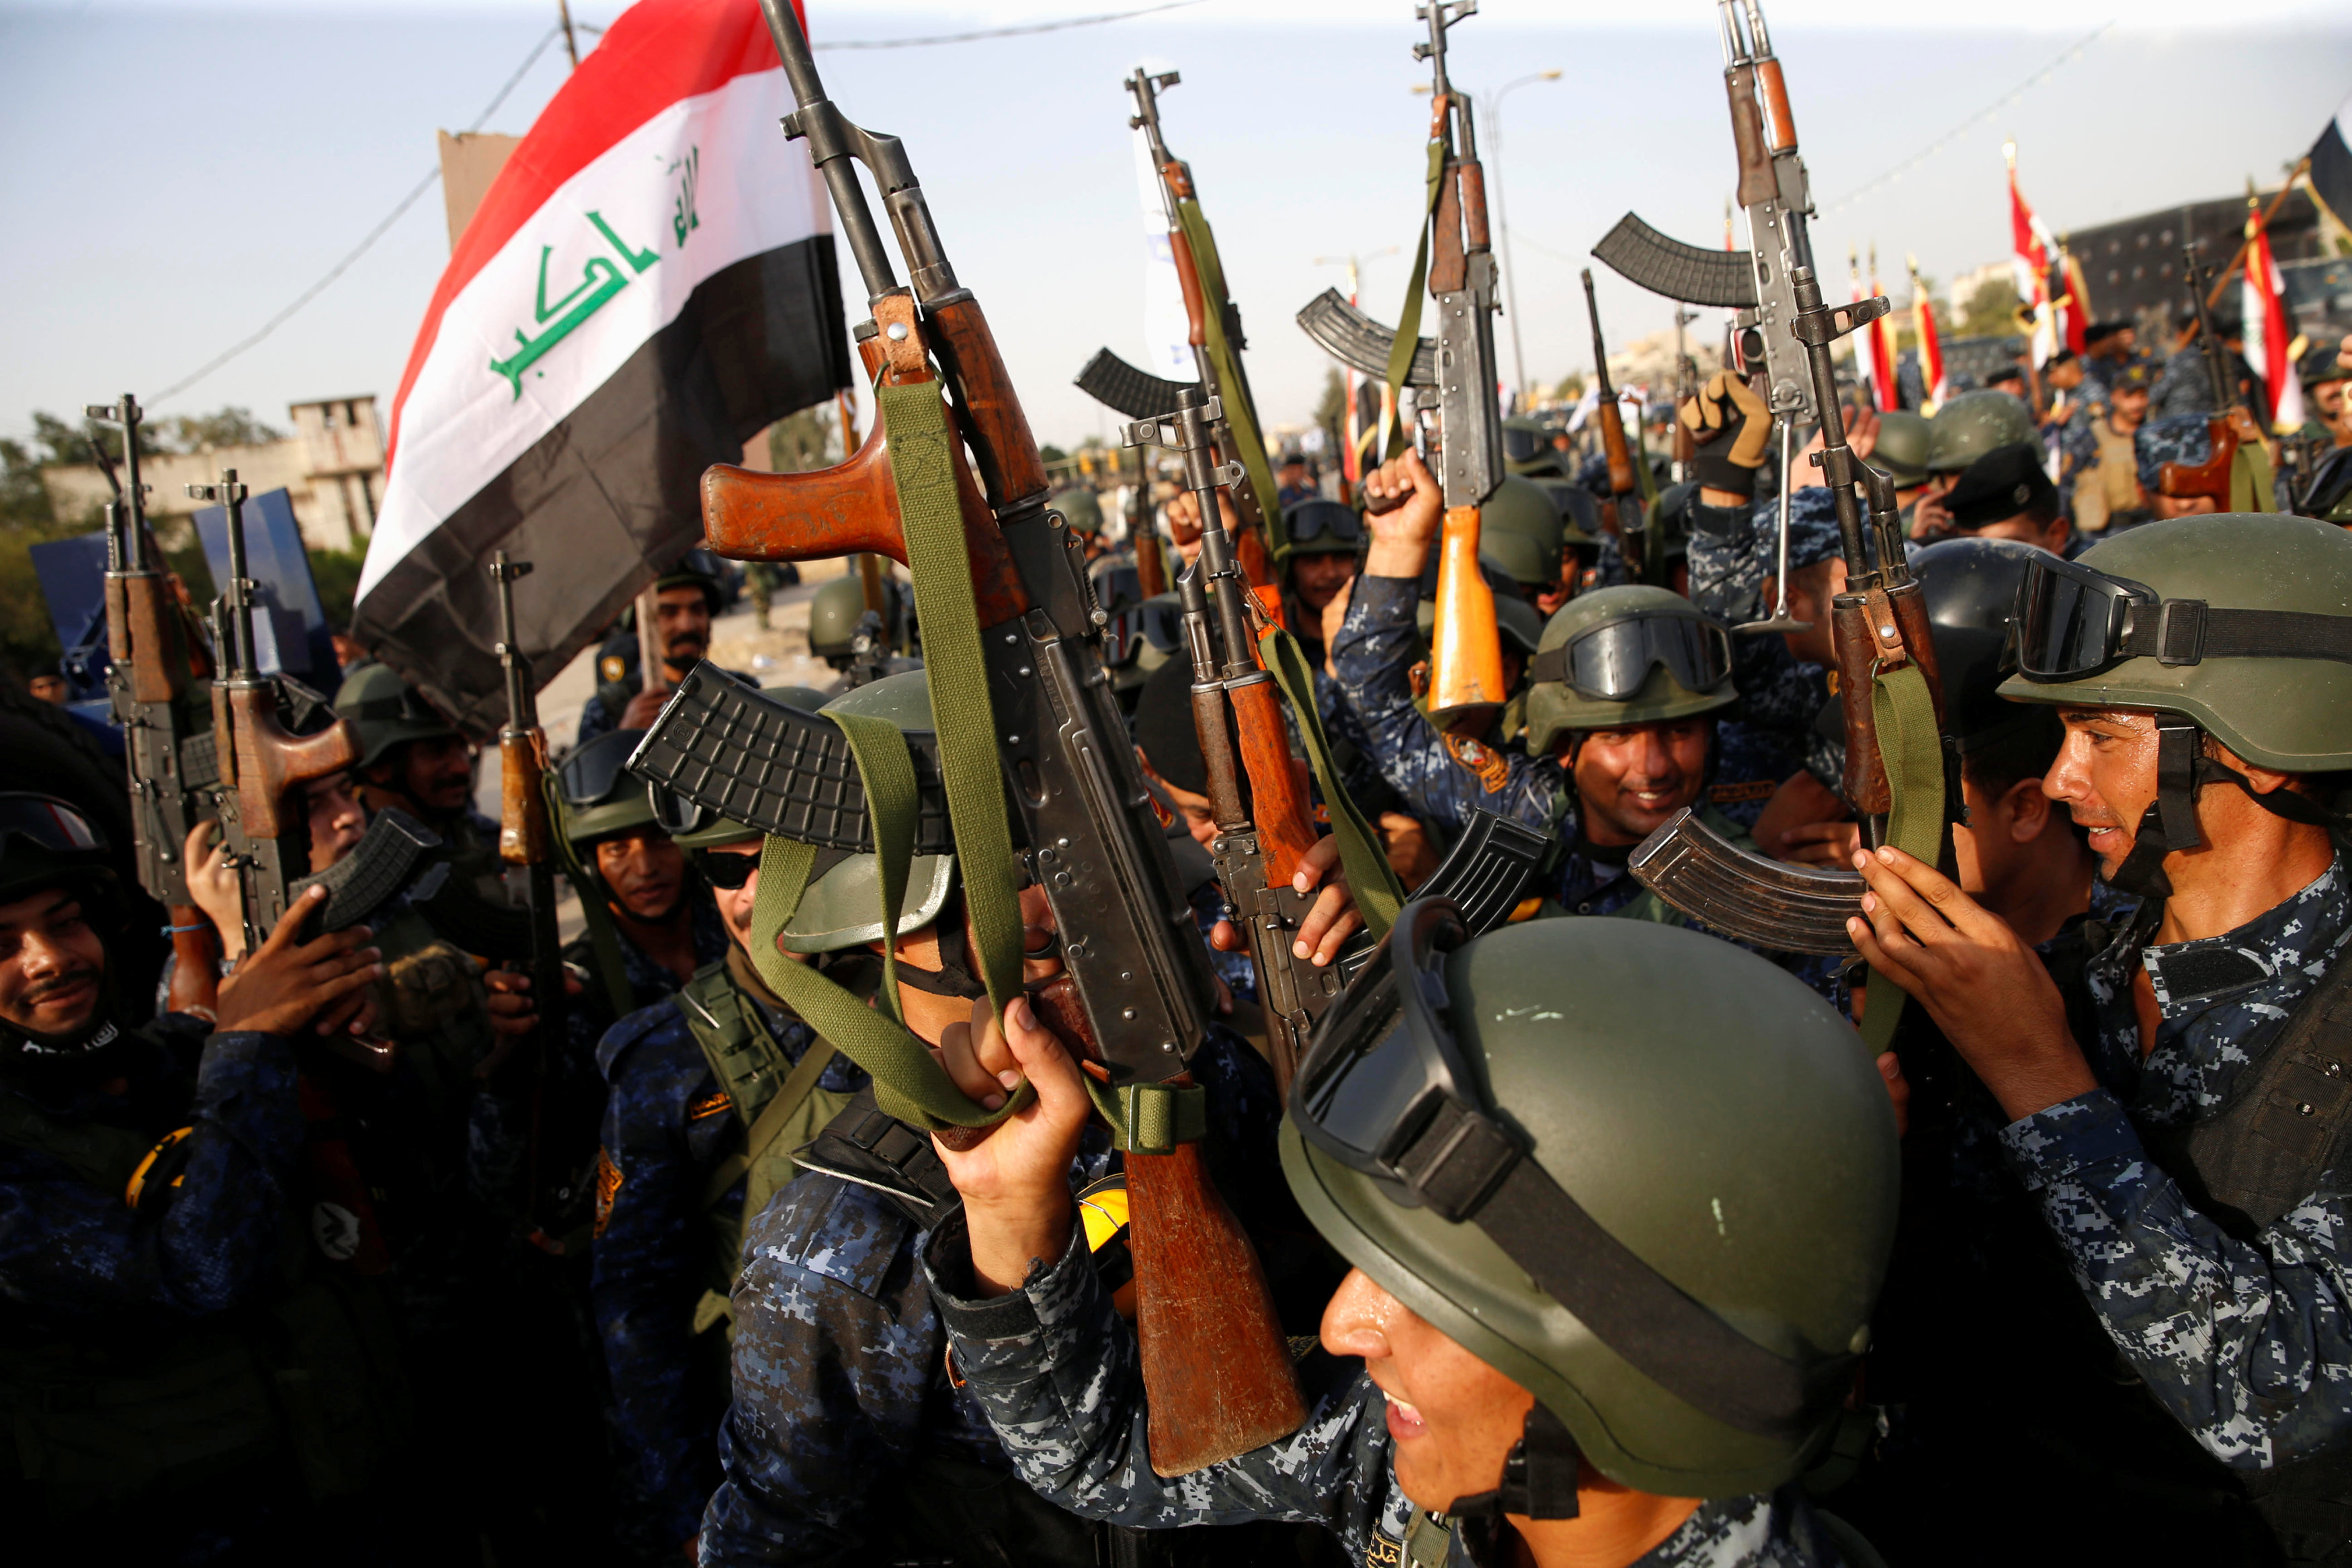 Mosul victory announcement in 'next few days'